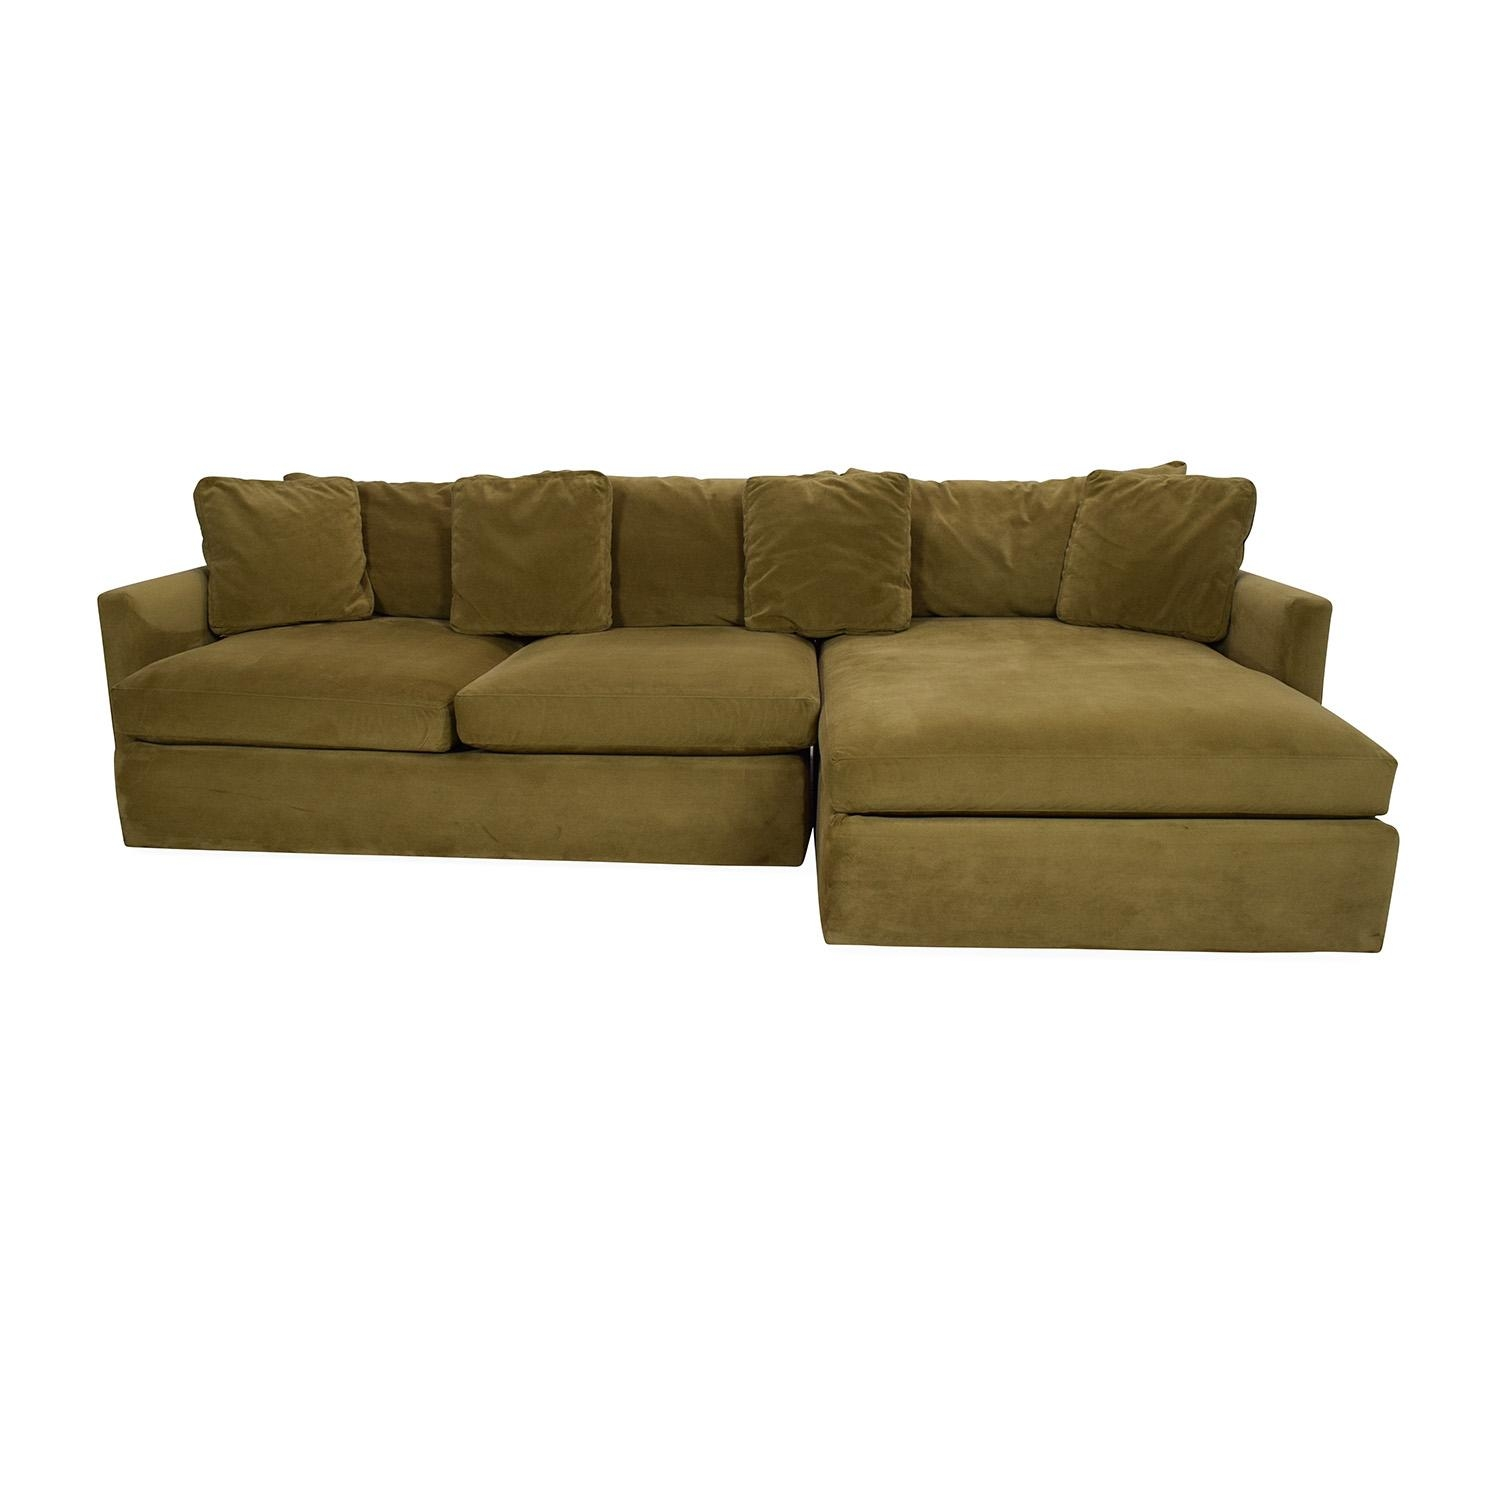 65% Off – Crate And Barrel Crate And Barrel Lounge Ii Sectional With Used Sectionals (View 10 of 20)